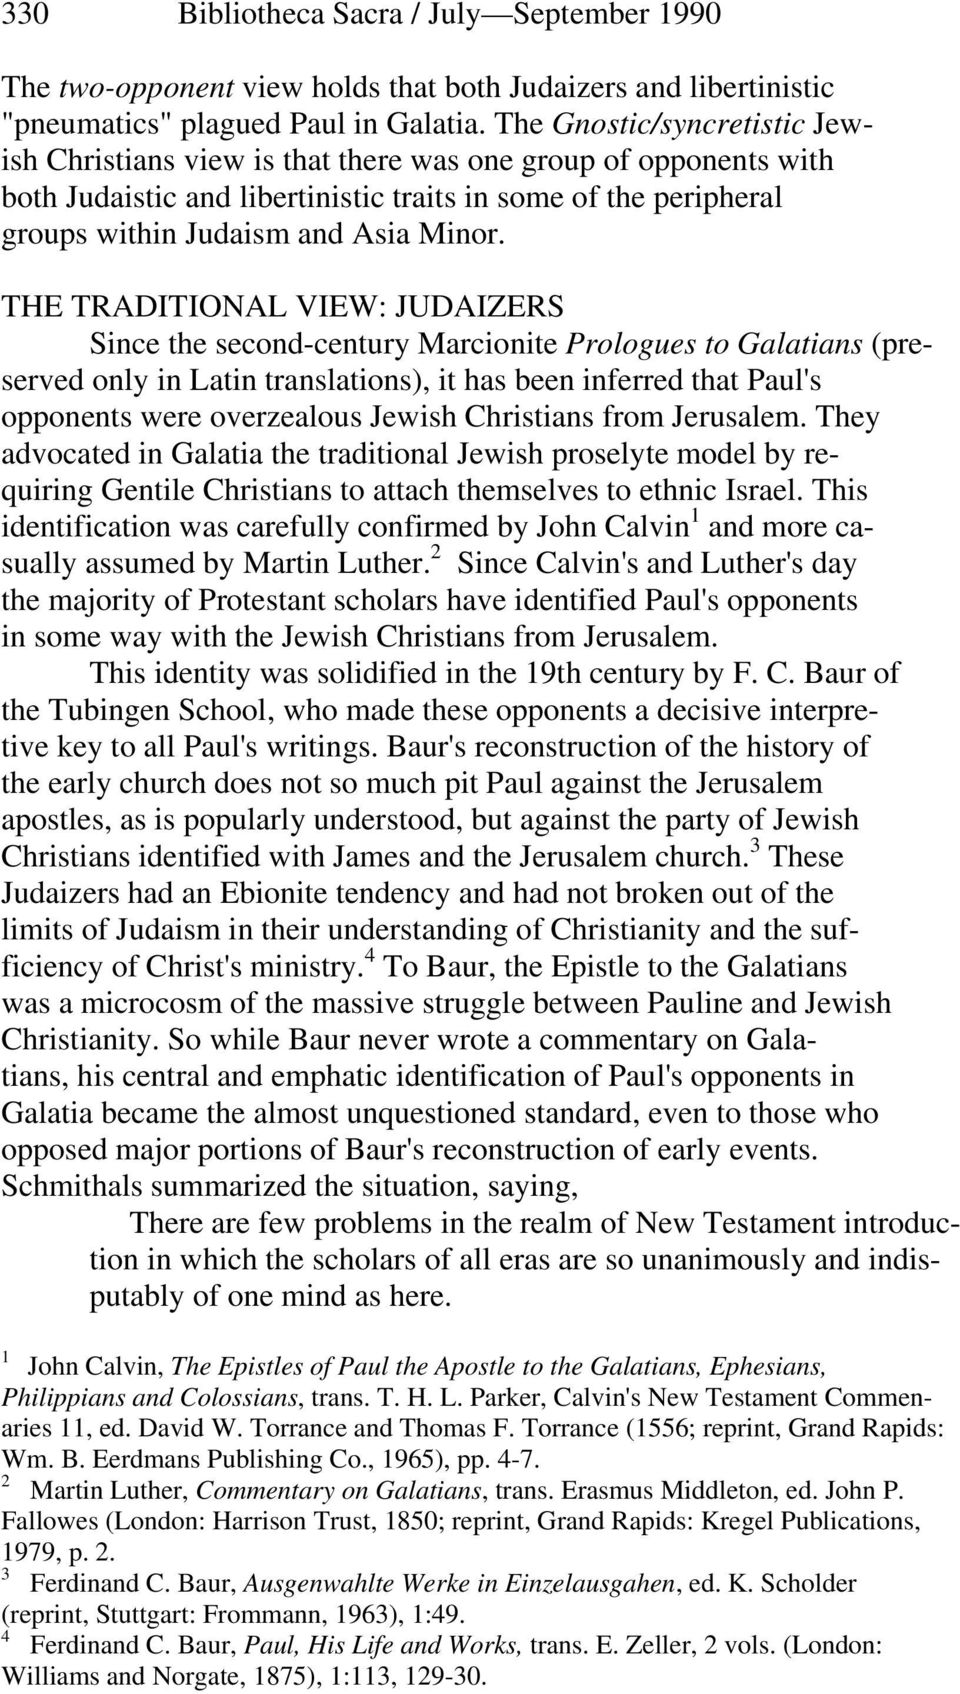 THE TRADITIONAL VIEW: JUDAIZERS Since the second-century Marcionite Prologues to Galatians (preserved only in Latin translations), it has been inferred that Paul's opponents were overzealous Jewish